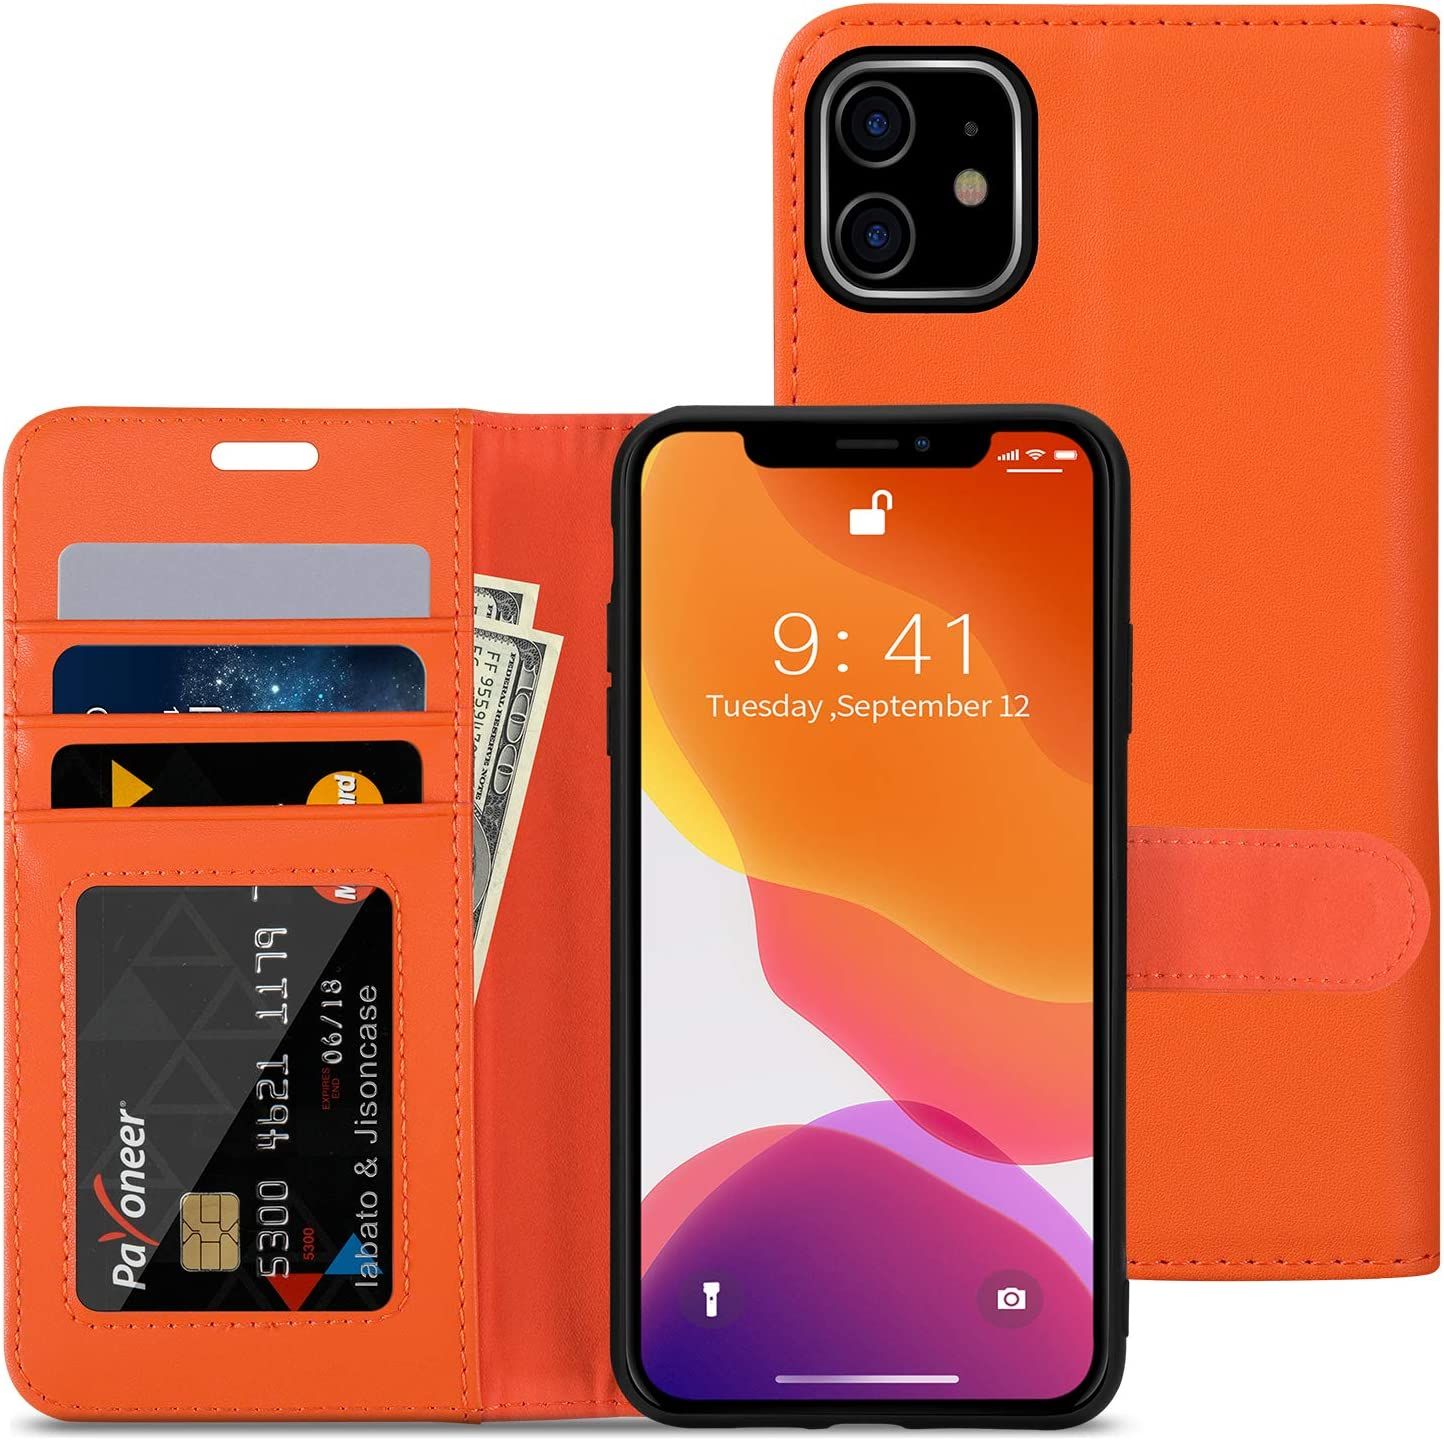 iphone 11 case size